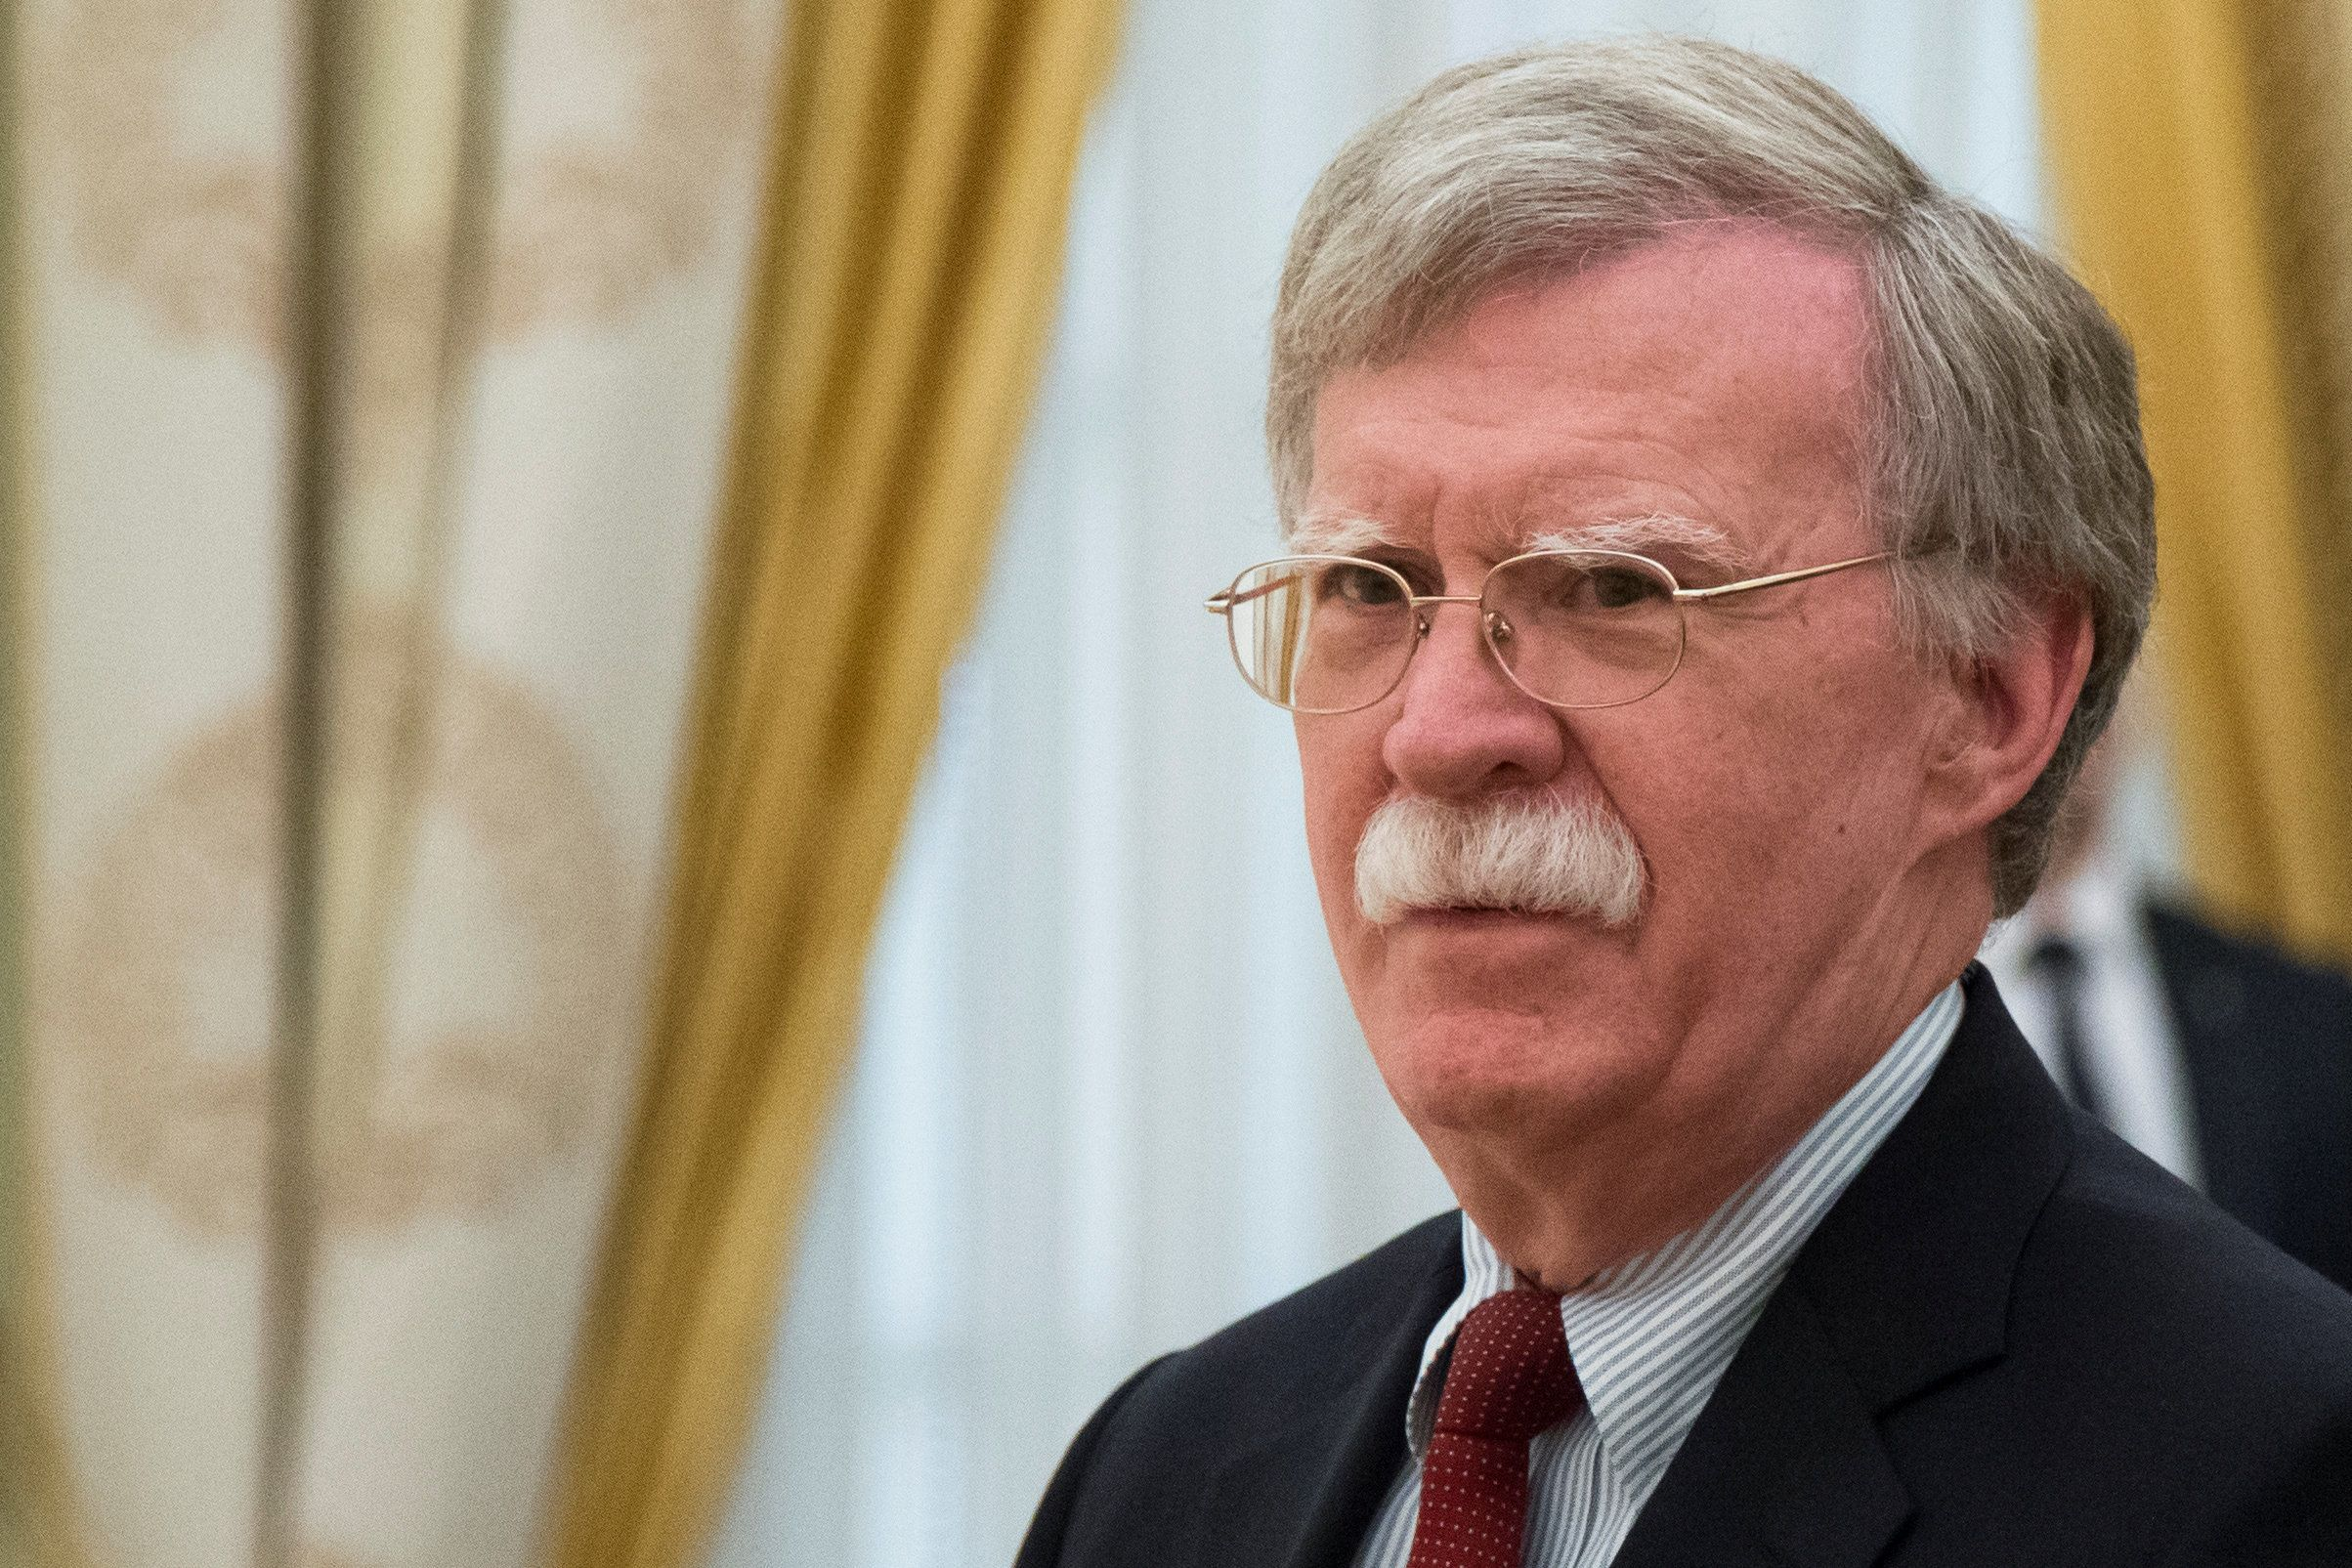 Pompeo took offense at Bolton for criticizing Trump and called him a traitor